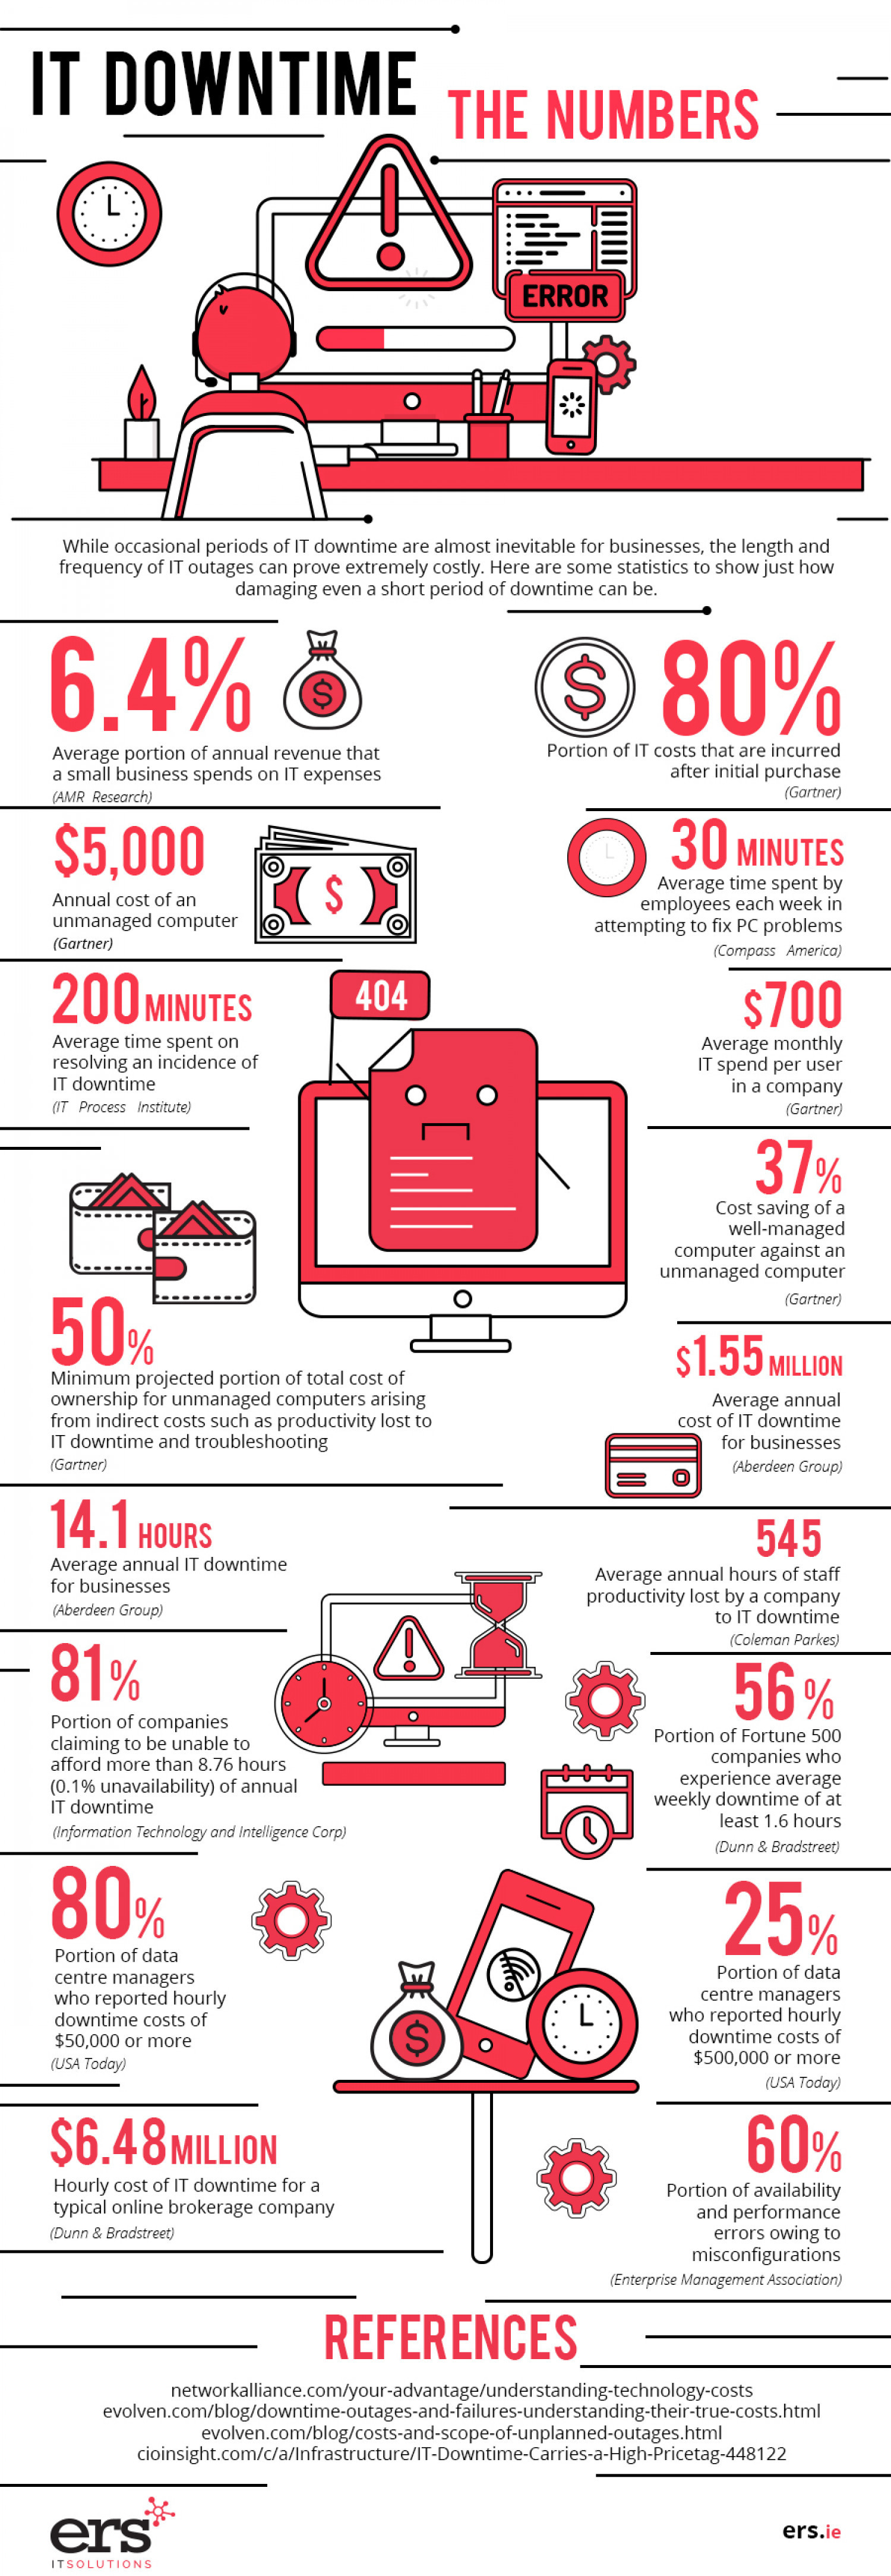 IT Downtime: The Numbers Infographic